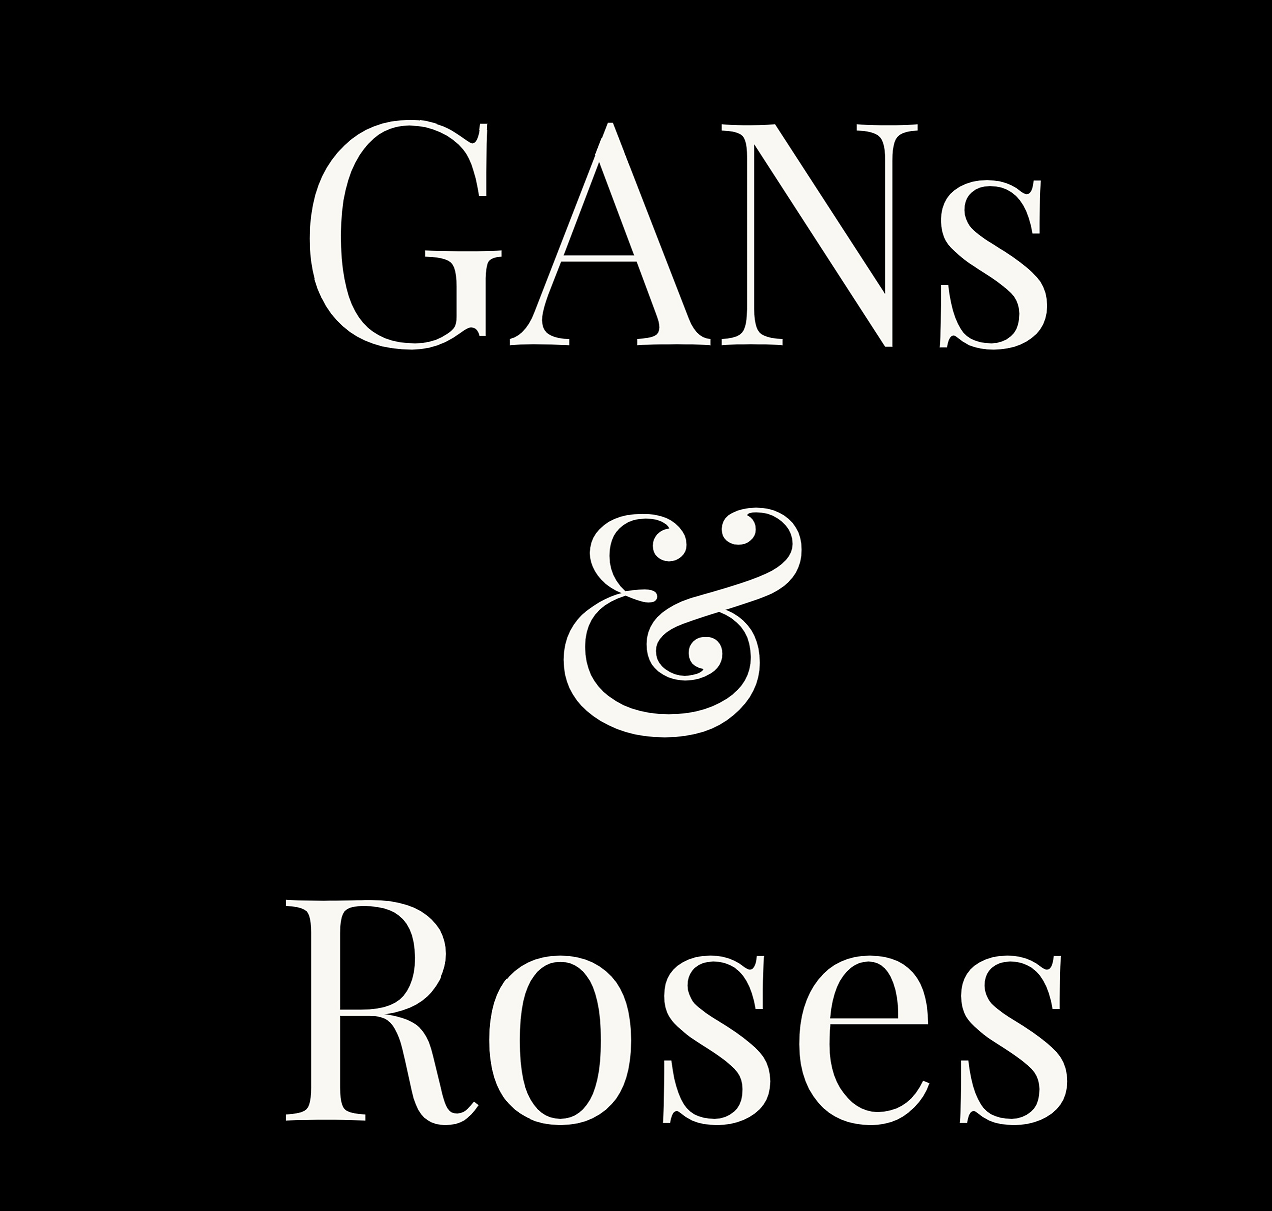 GANs & Roses to present at Pecha Kucha AI Night in Basel - GANs N' Roses, a joint venture between Berlin based AI wizards birdsonmars.com and Zürich based flamboyantflowers.com has been invited to present at the Pecha Kucha AI Night at the HeK in Basel on Friday May 24.Not to be missed!